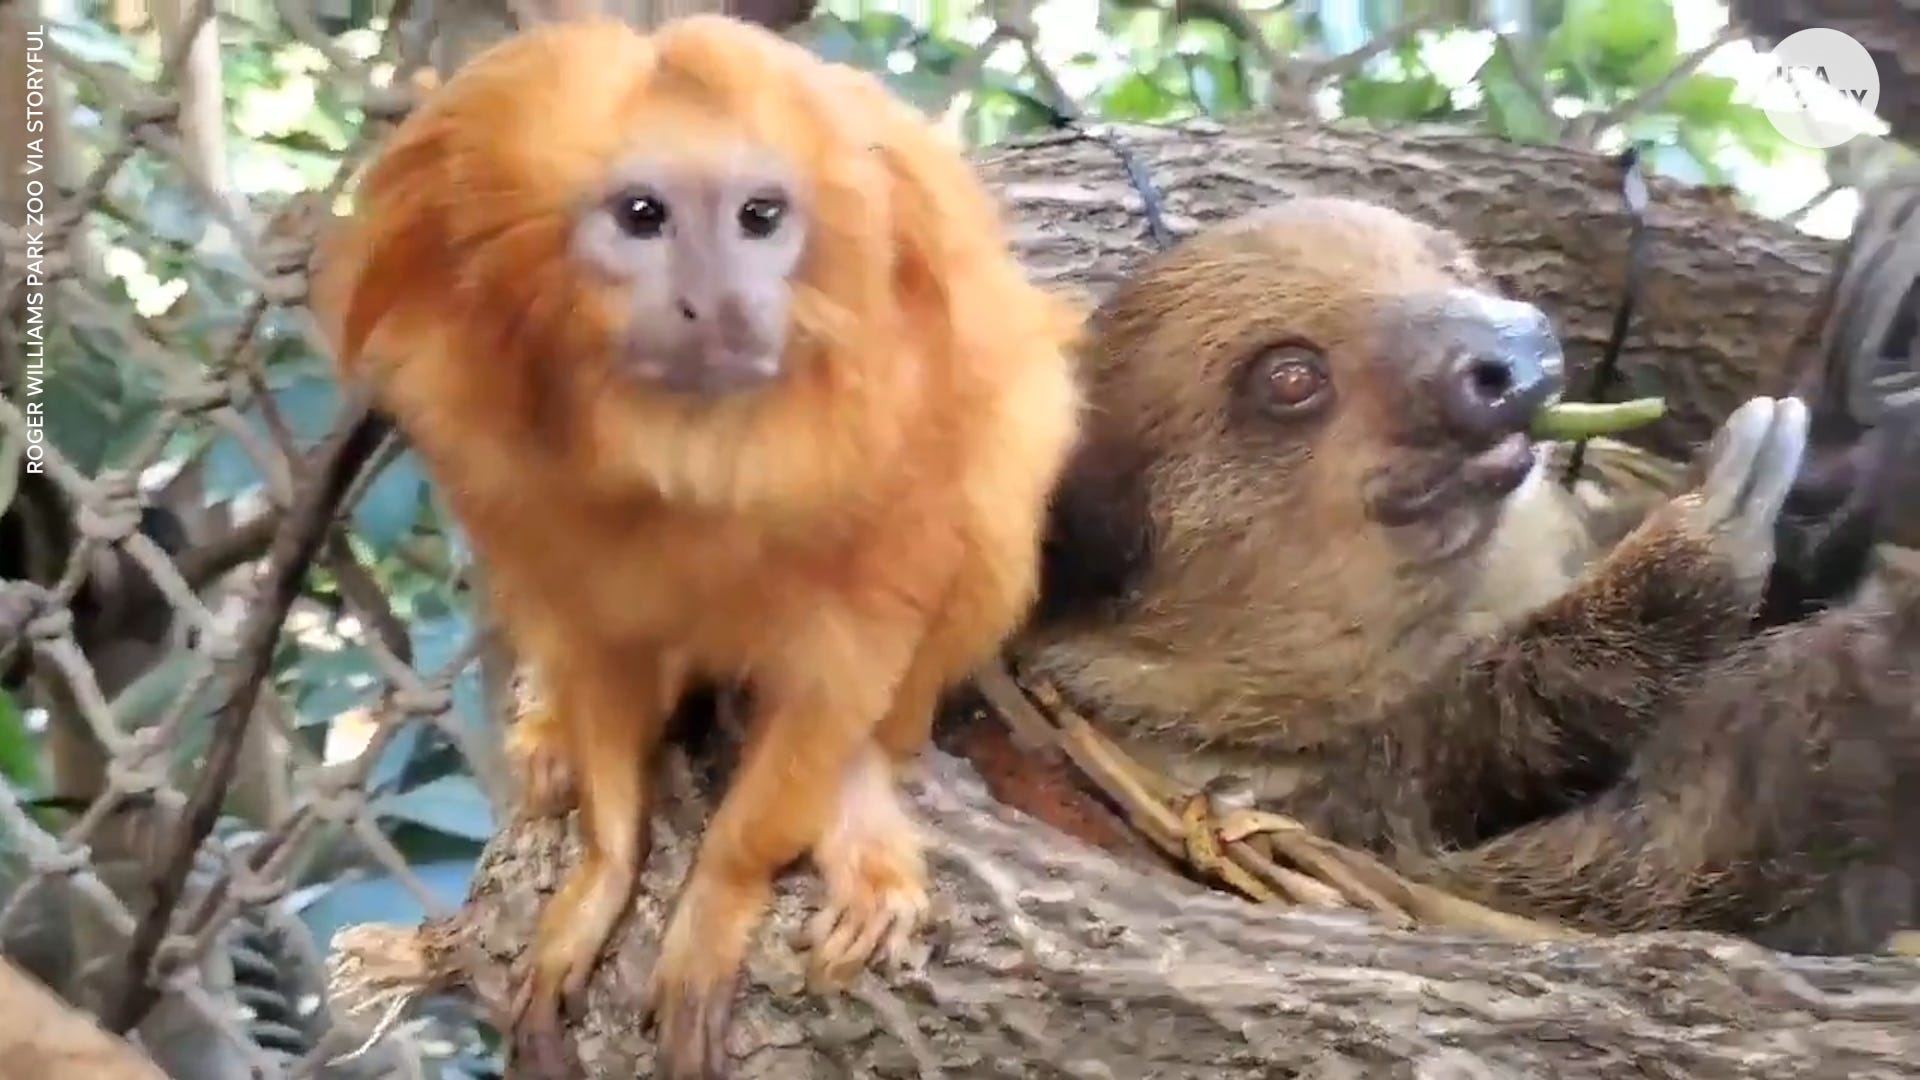 Tamarin spends quality time with sloth during snack time at a zoo in Providence